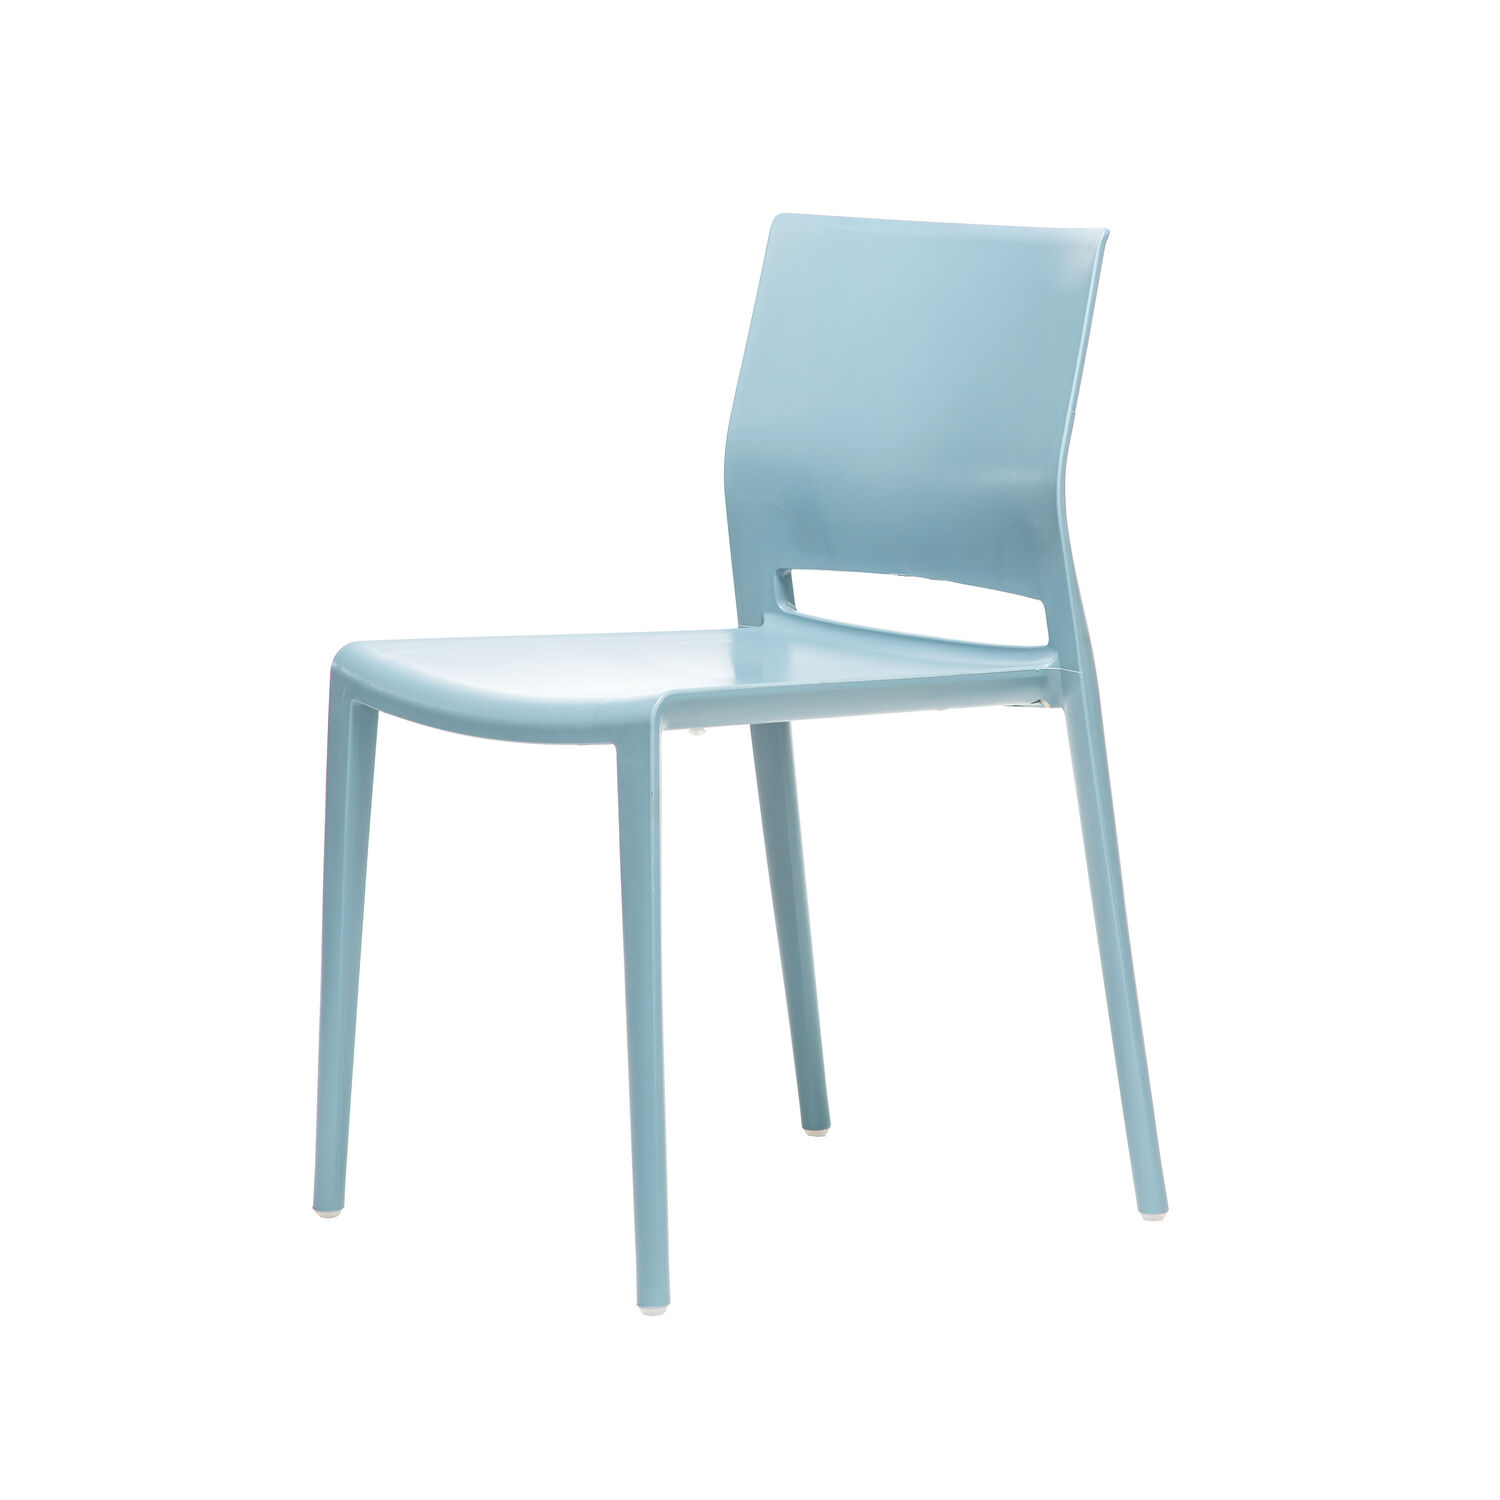 Hita Chair No Arms (3)